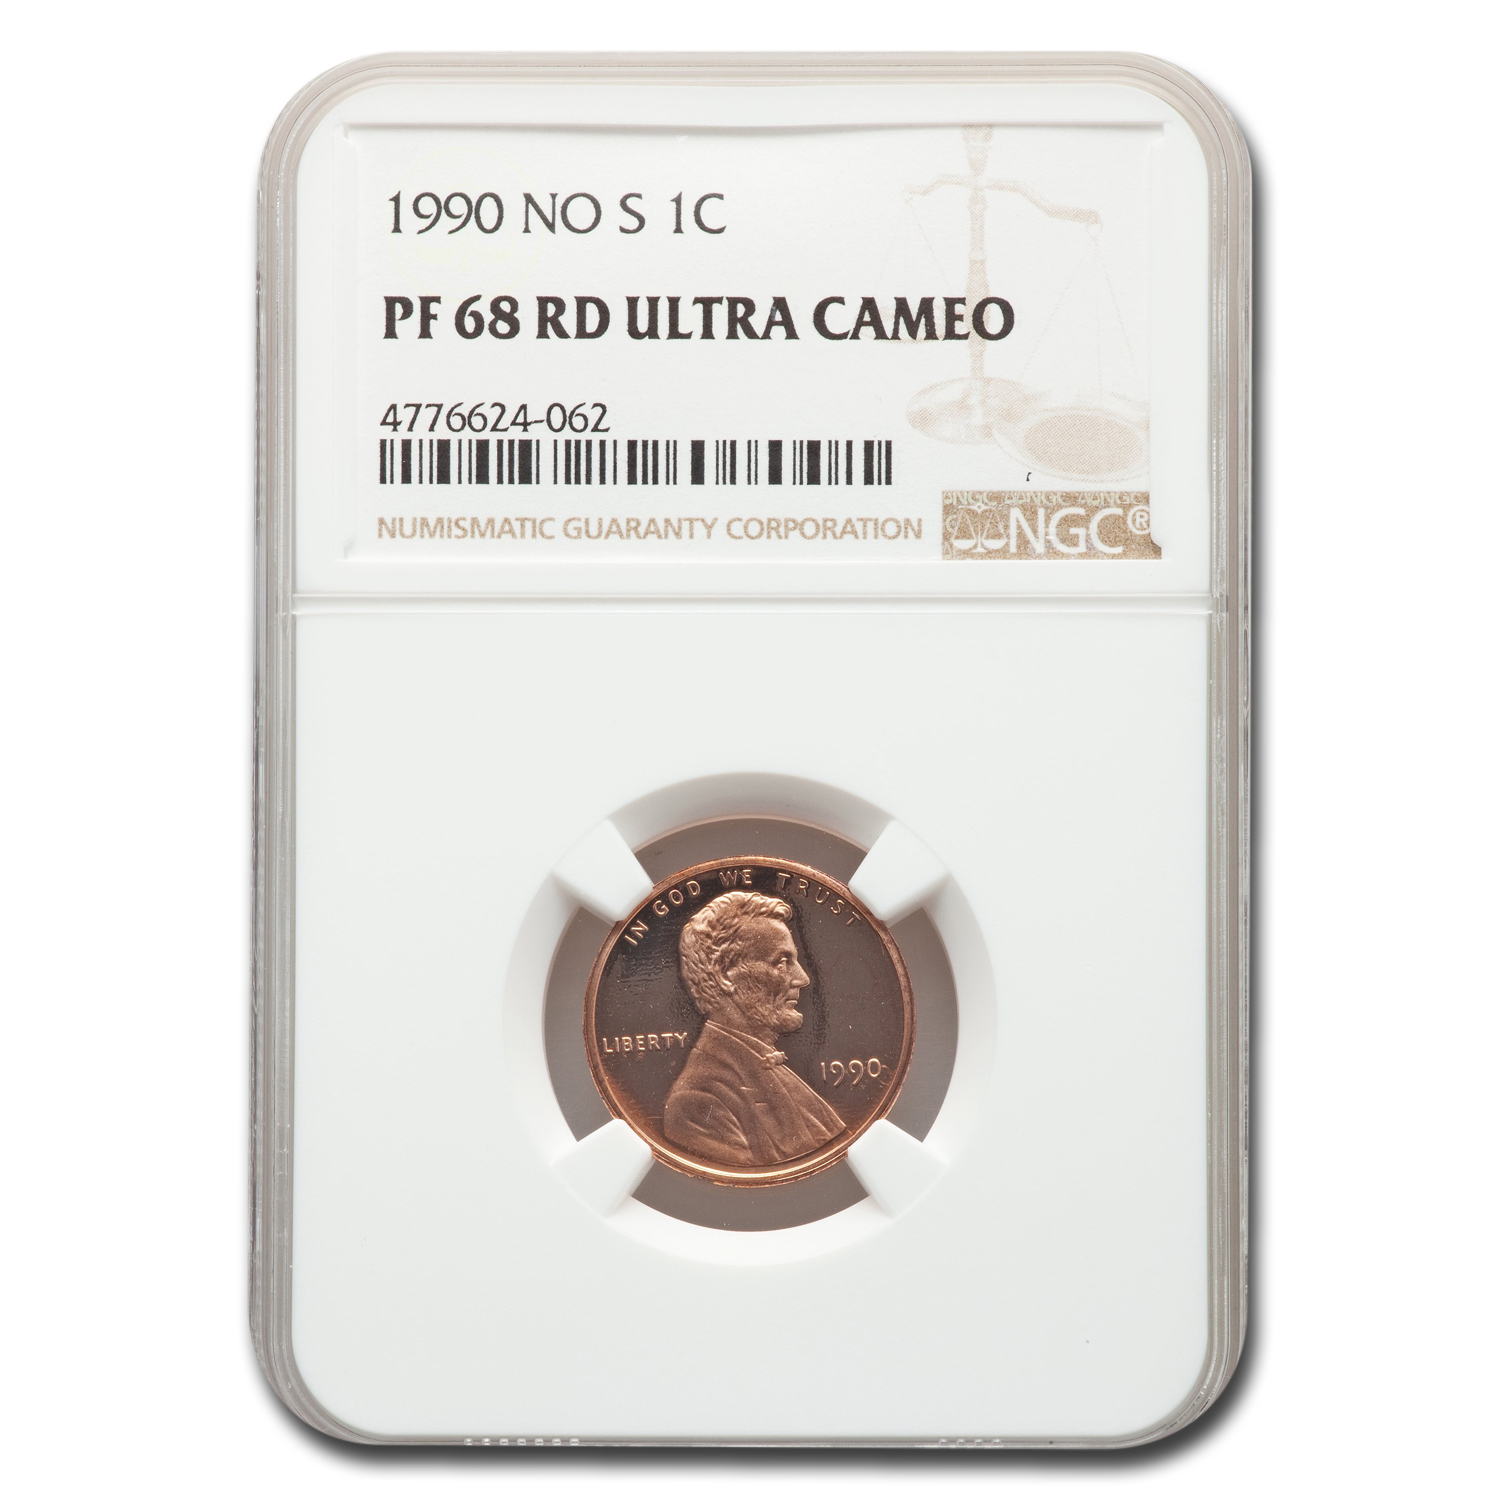 1990 No S Lincoln Cent Proof-68 Ultra Cameo NGC (Red)